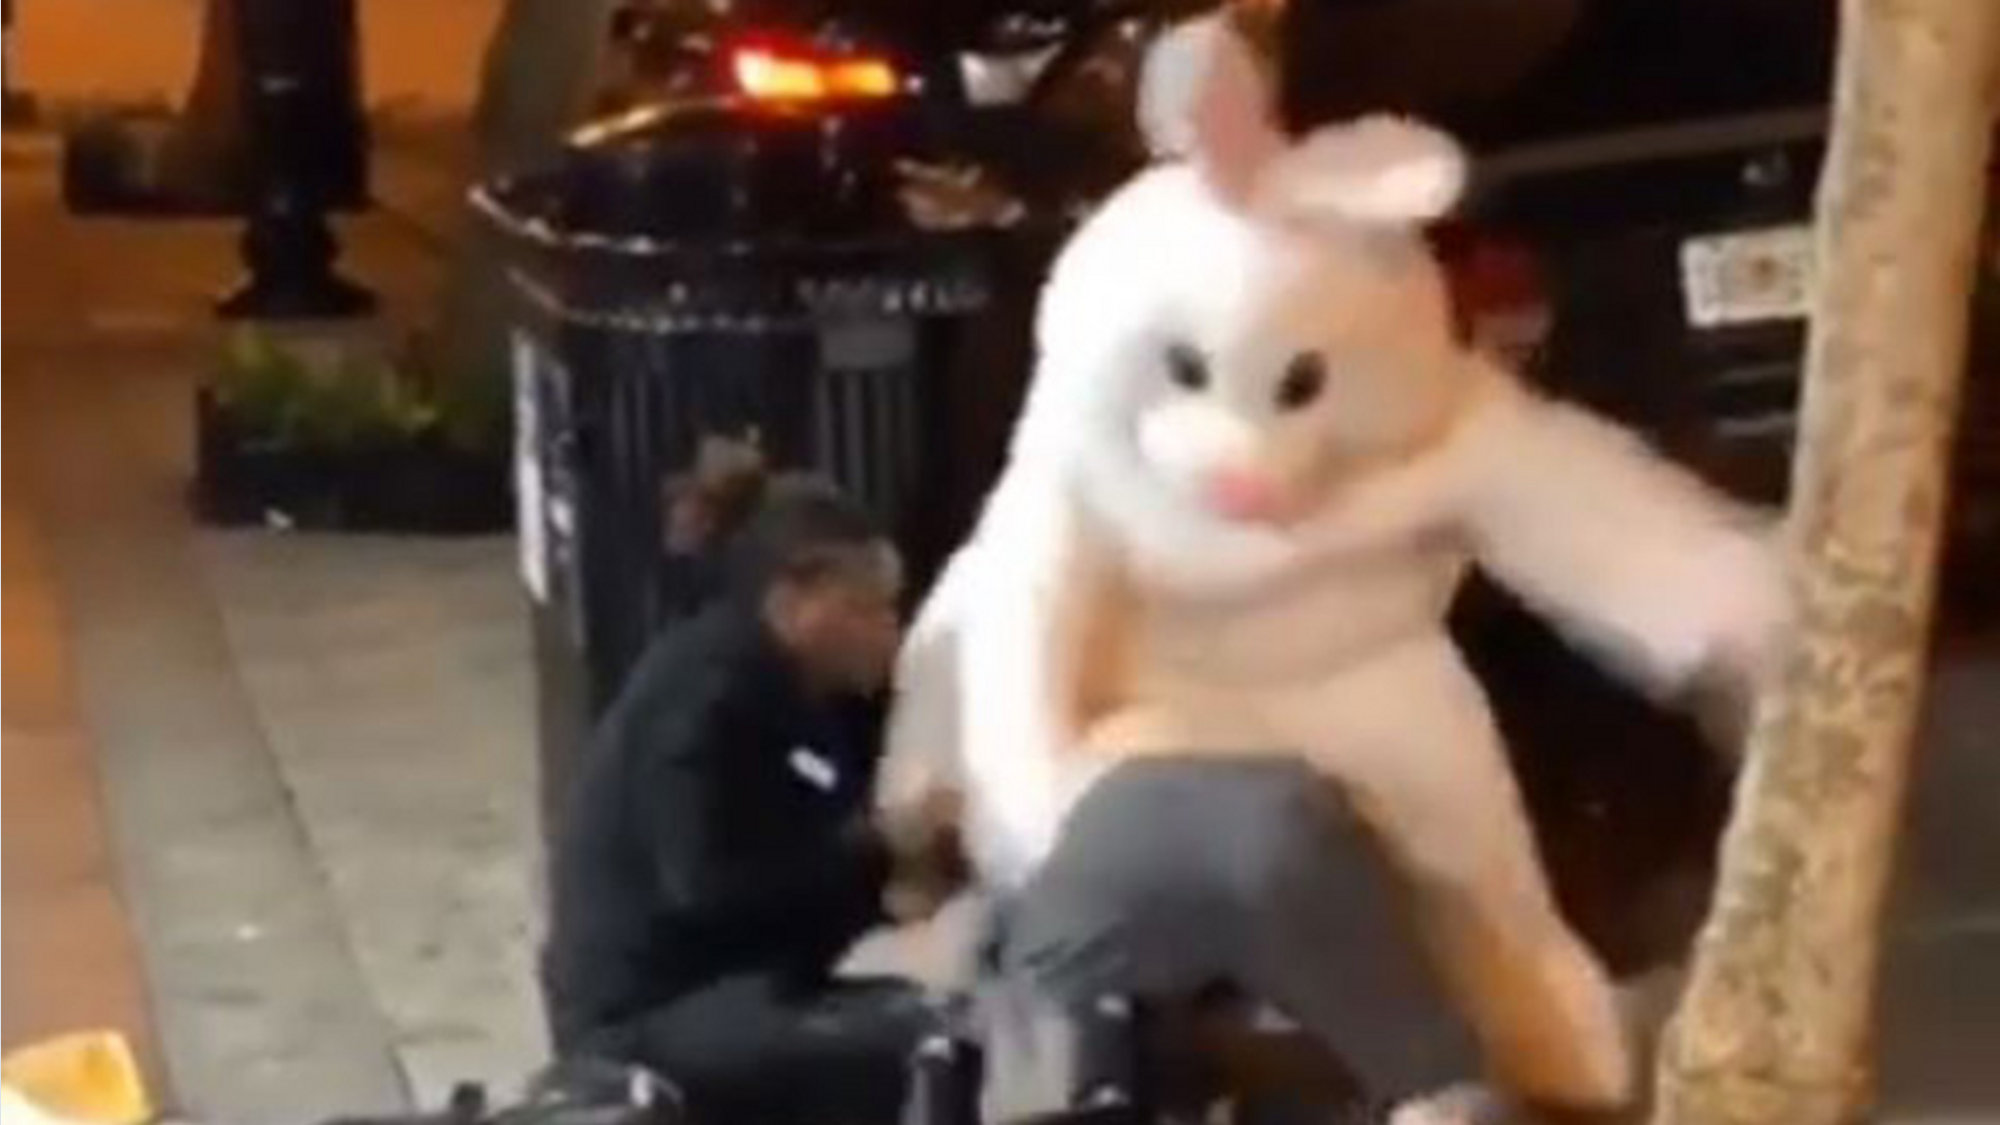 Easter Bunny in downtown Orlando fight video explains why he threw punches